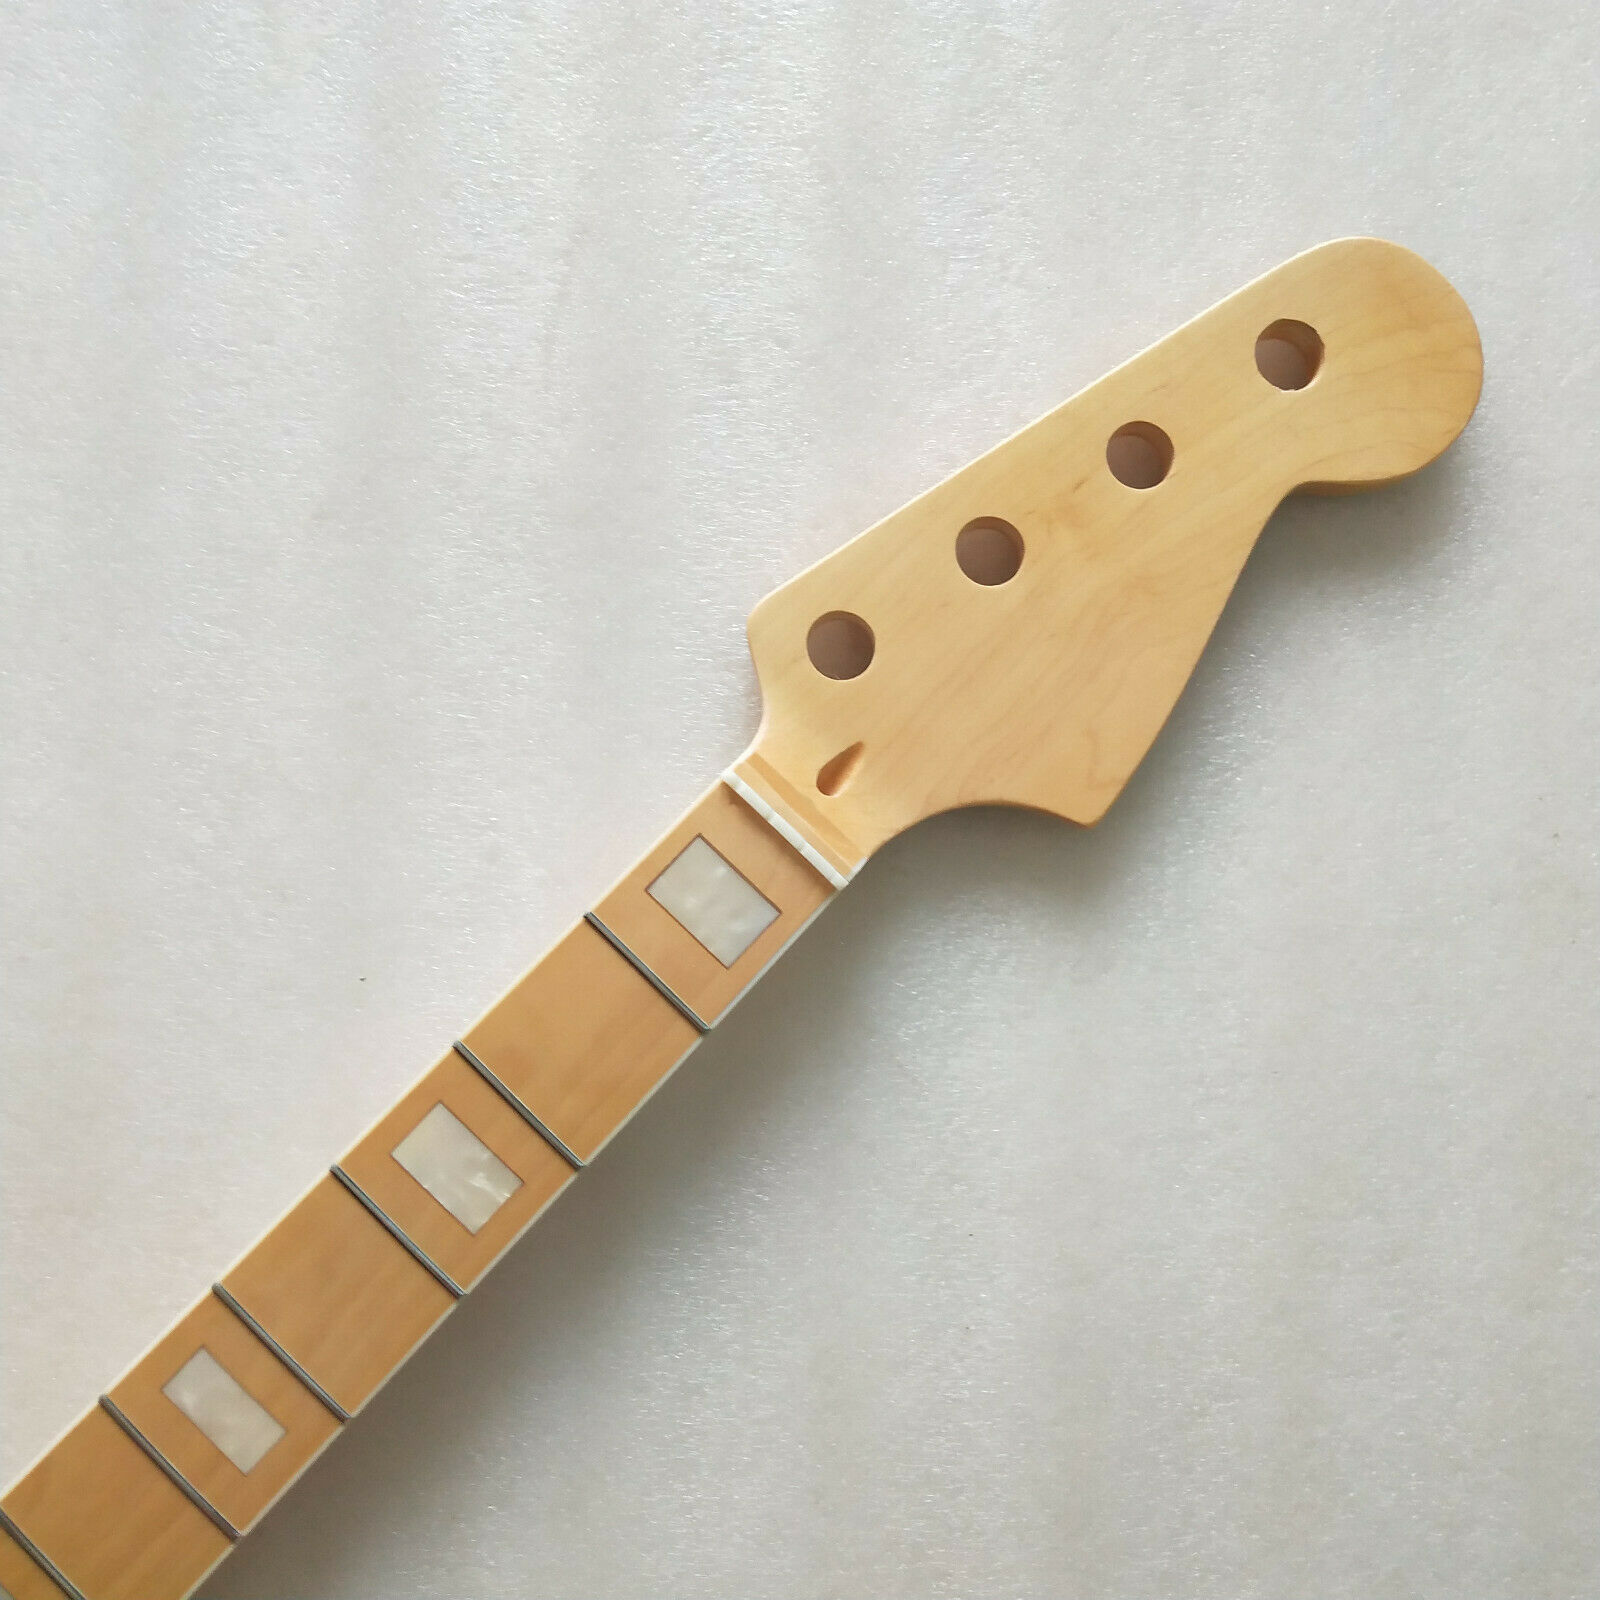 Gloss 4 string 21 fret maple P bass Guitar Neck maple Fretboard block inaly